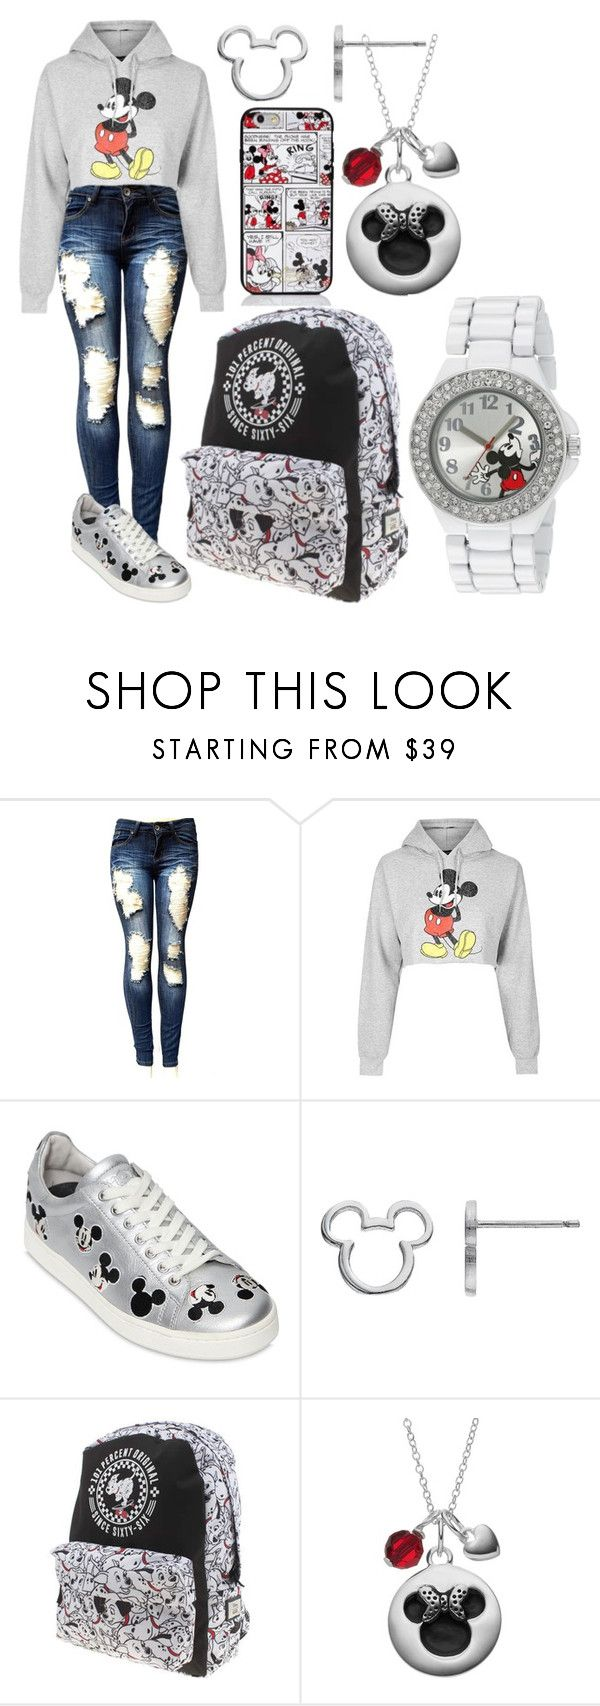 """""""Mickey Mouse!!"""" by pizza-headphones on Polyvore featuring Topshop, MOA Master of Arts, Disney, Kate Spade, Vans and disney"""